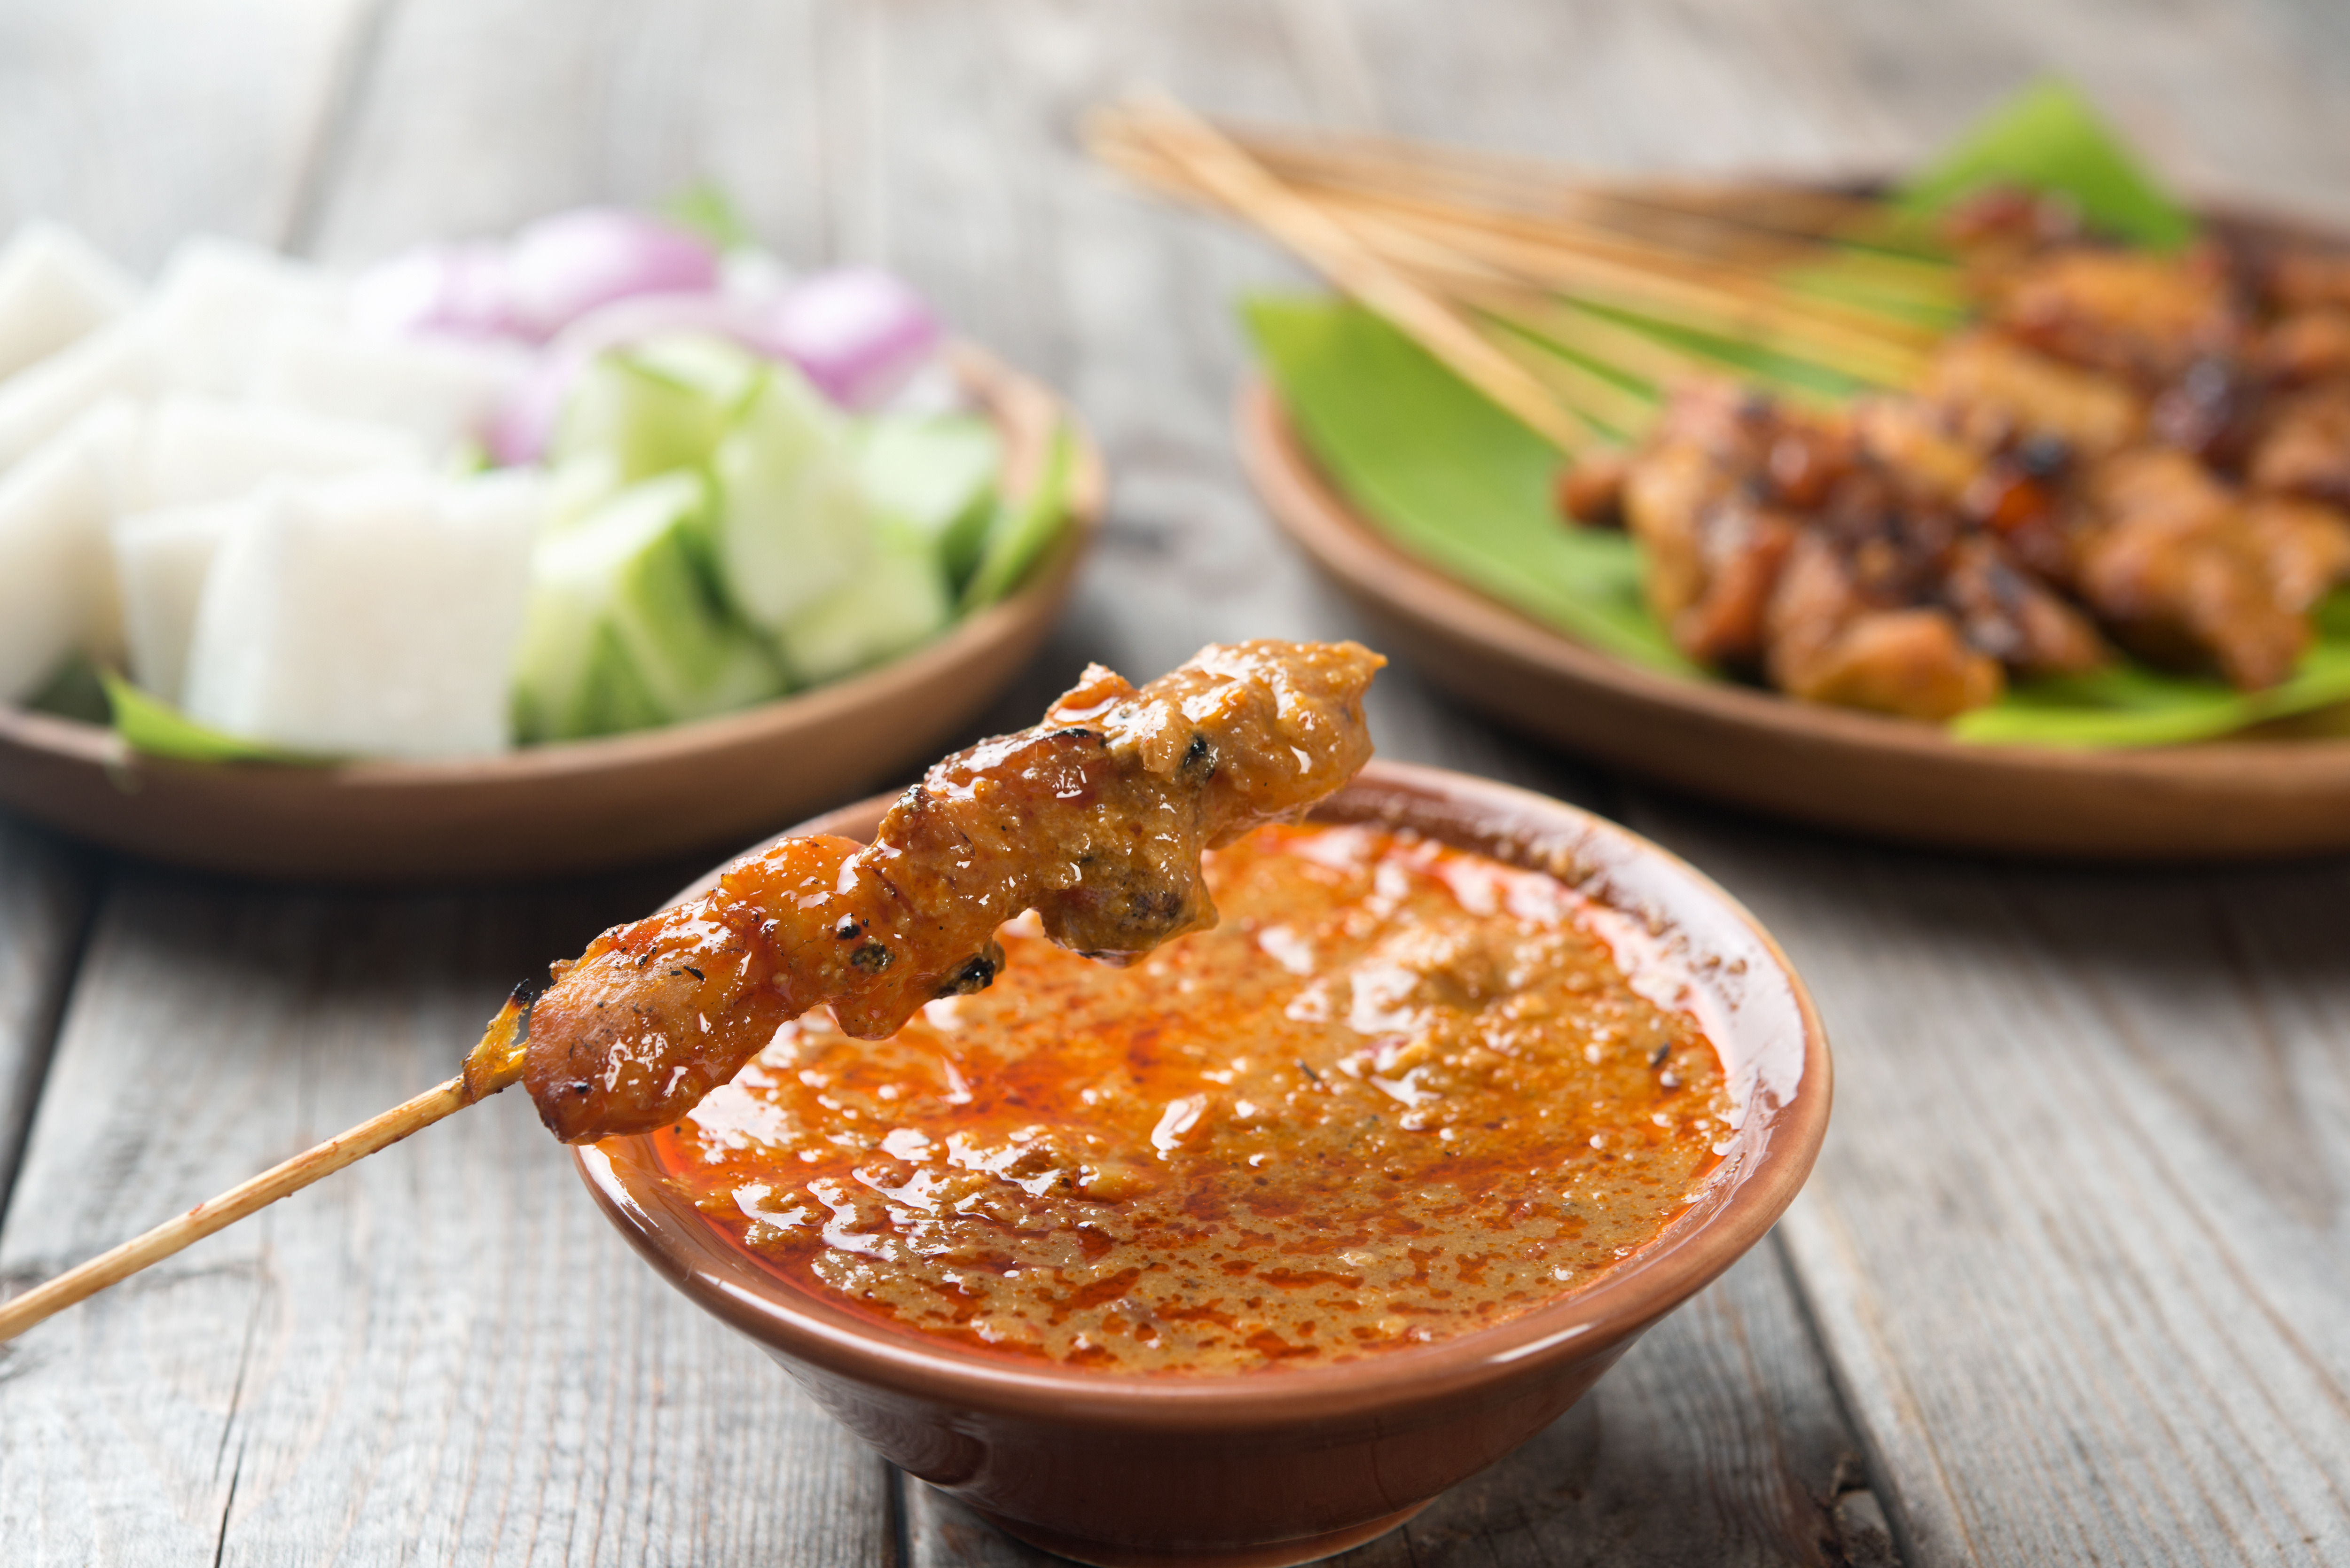 Delicious chicken satay and dipping sauce